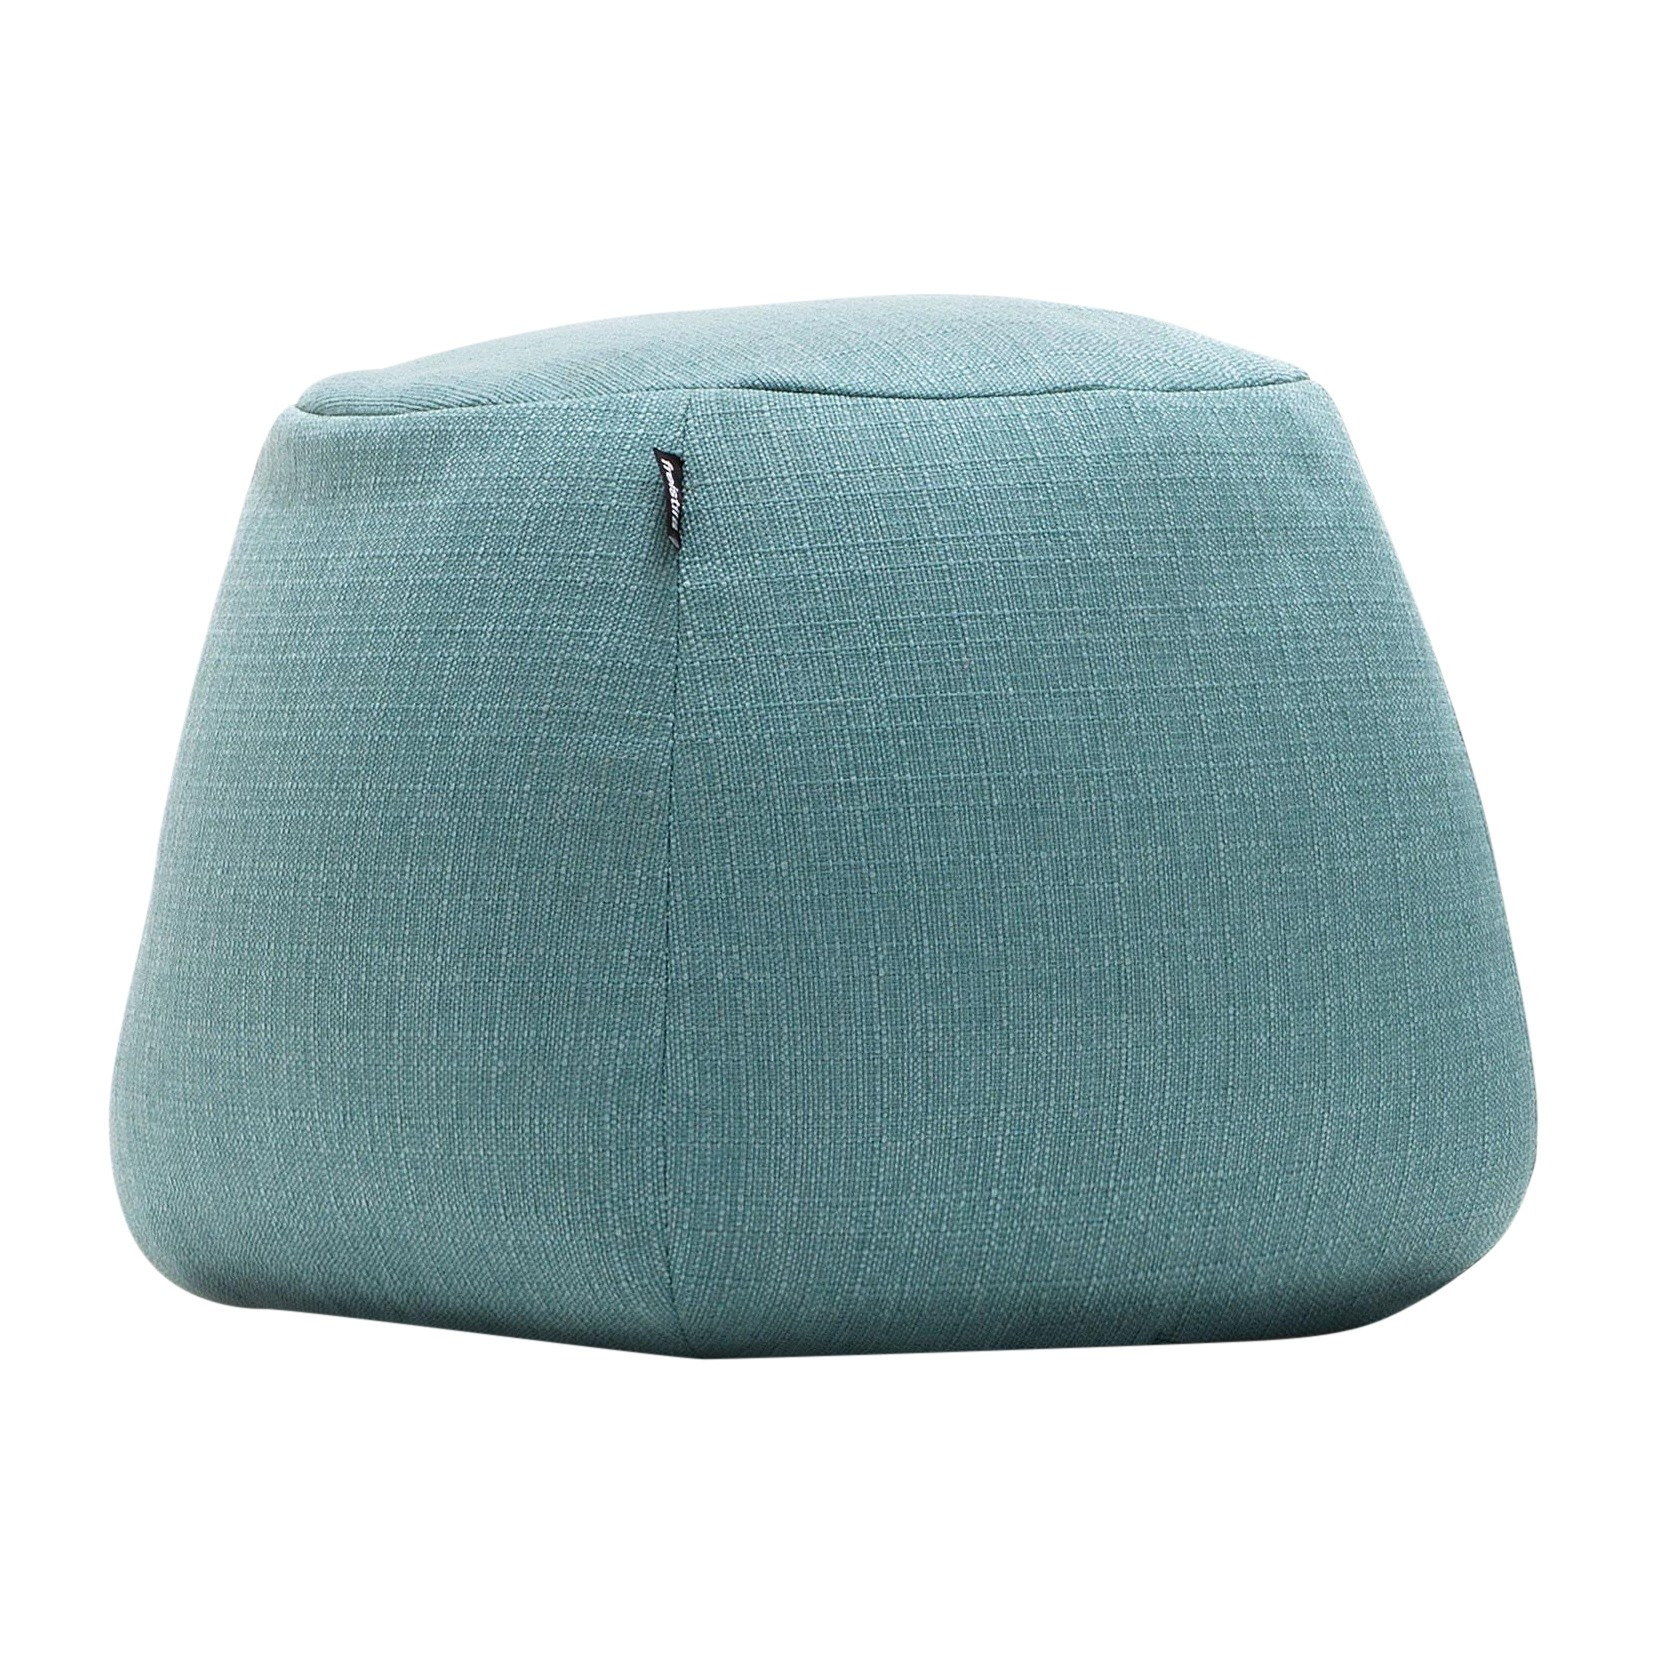 Freistil 173 Sessel Freistil 173 Pouf